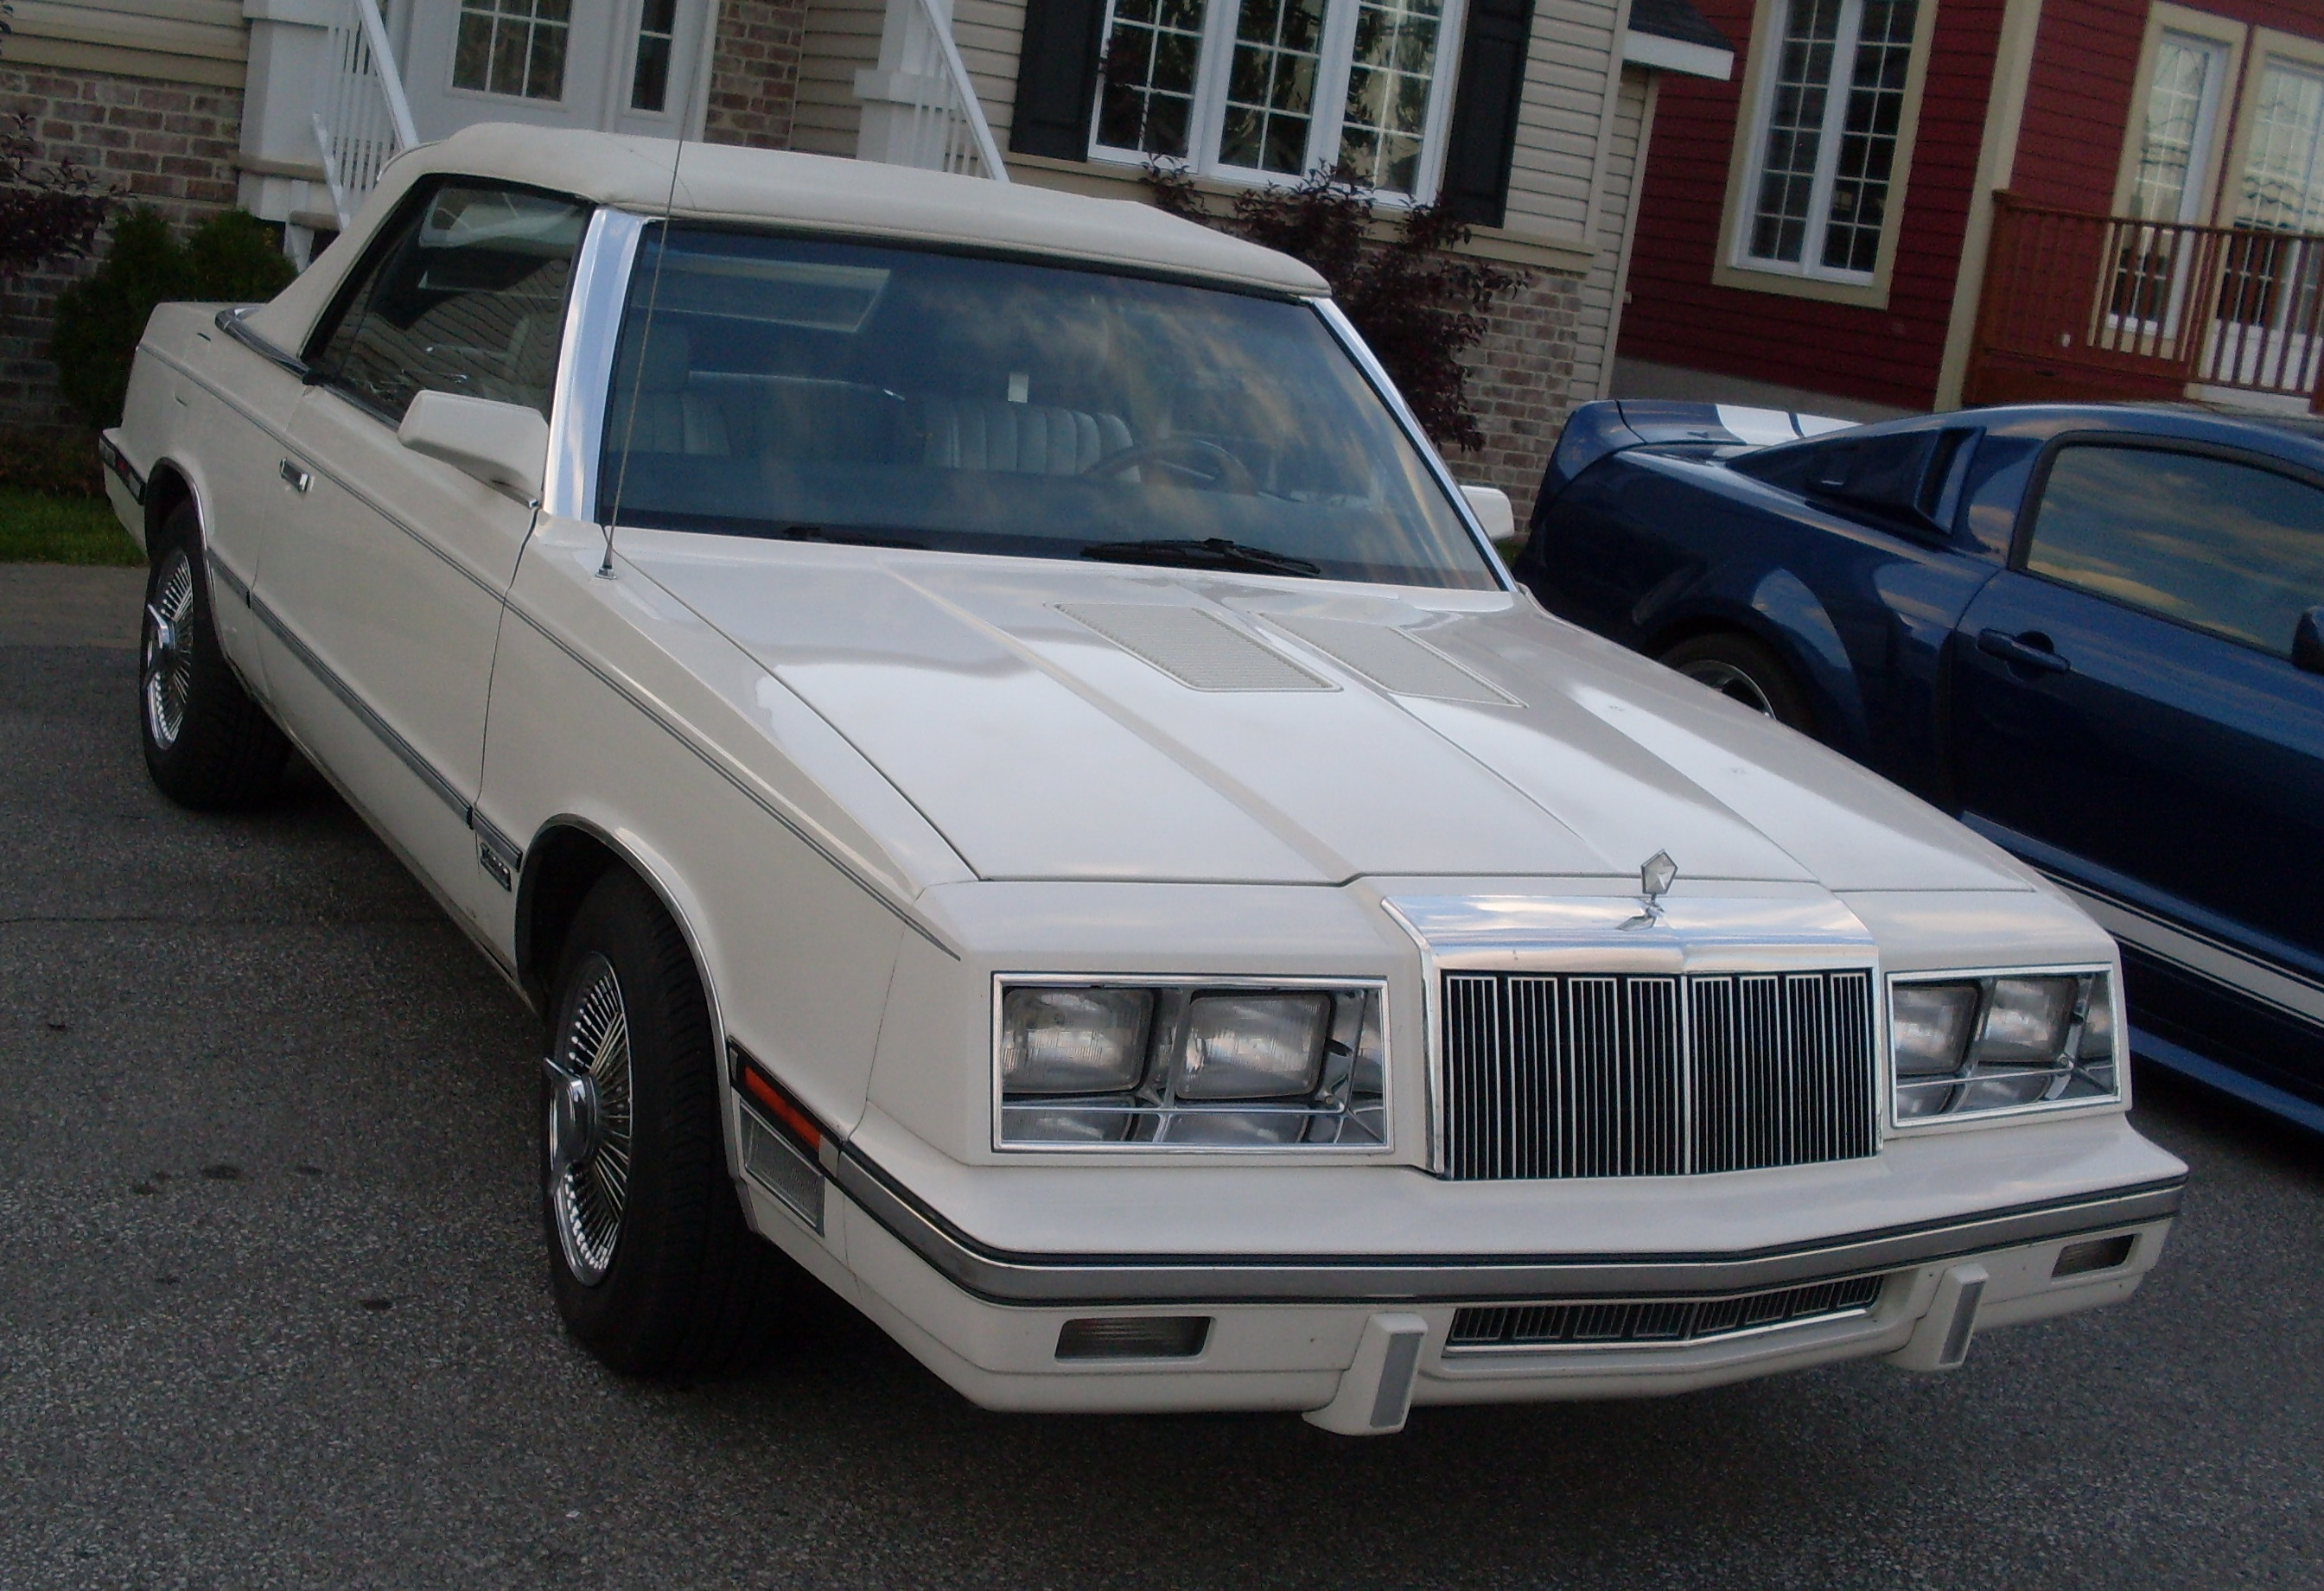 Town And Country Dodge >> File:Chrysler LeBaron K-Body Convertible (Auto classique St-Lin-Laurentides '13).JPG - Wikimedia ...